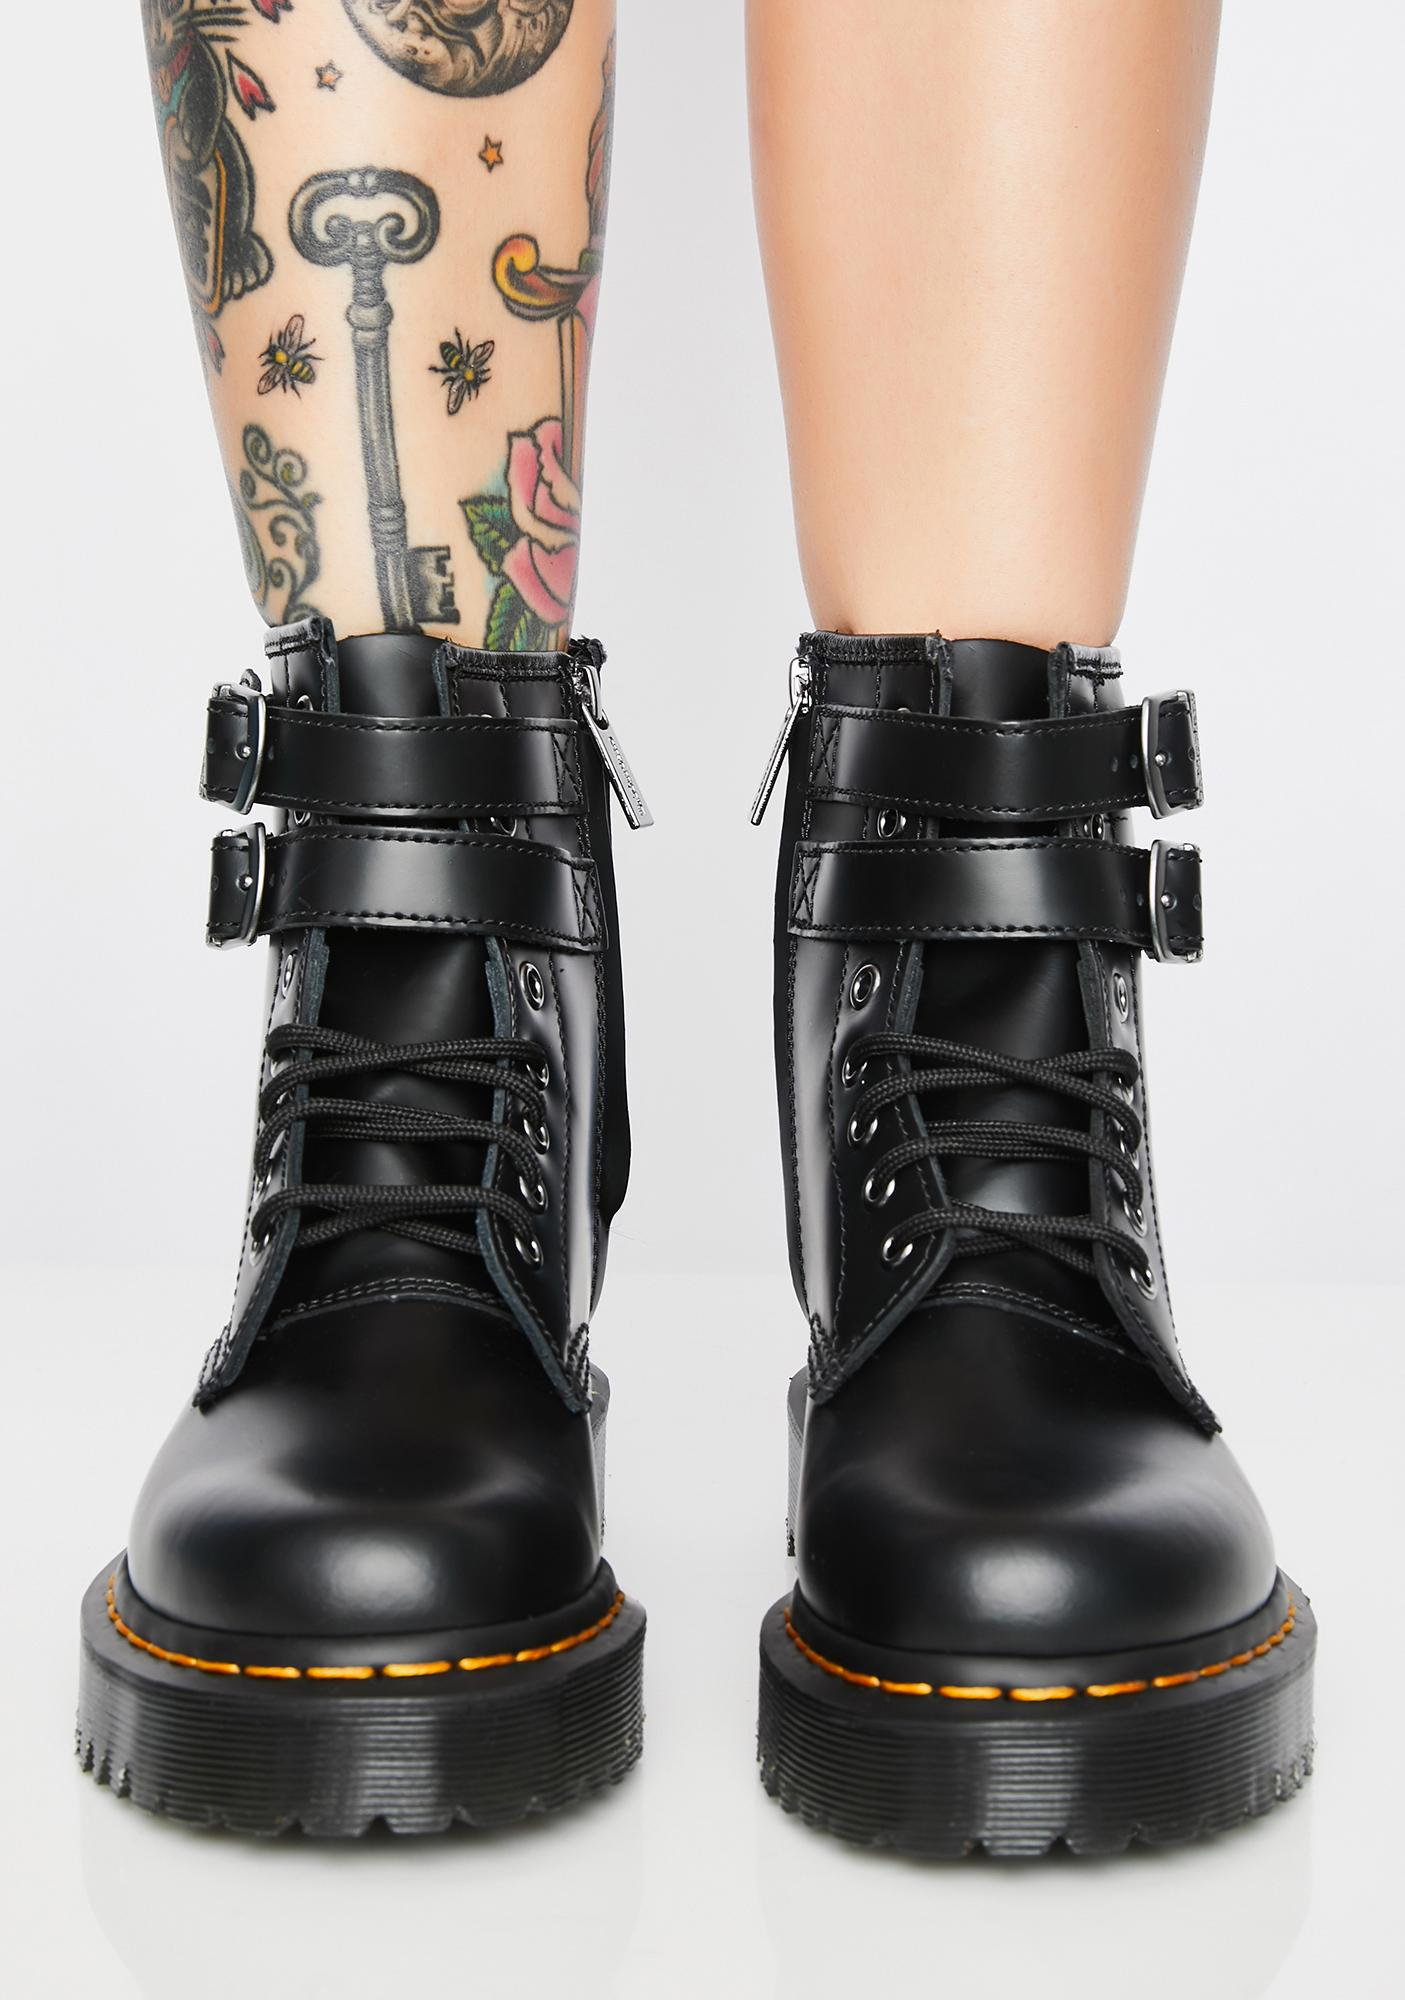 Dr. Martens 1460 Alternative Boots